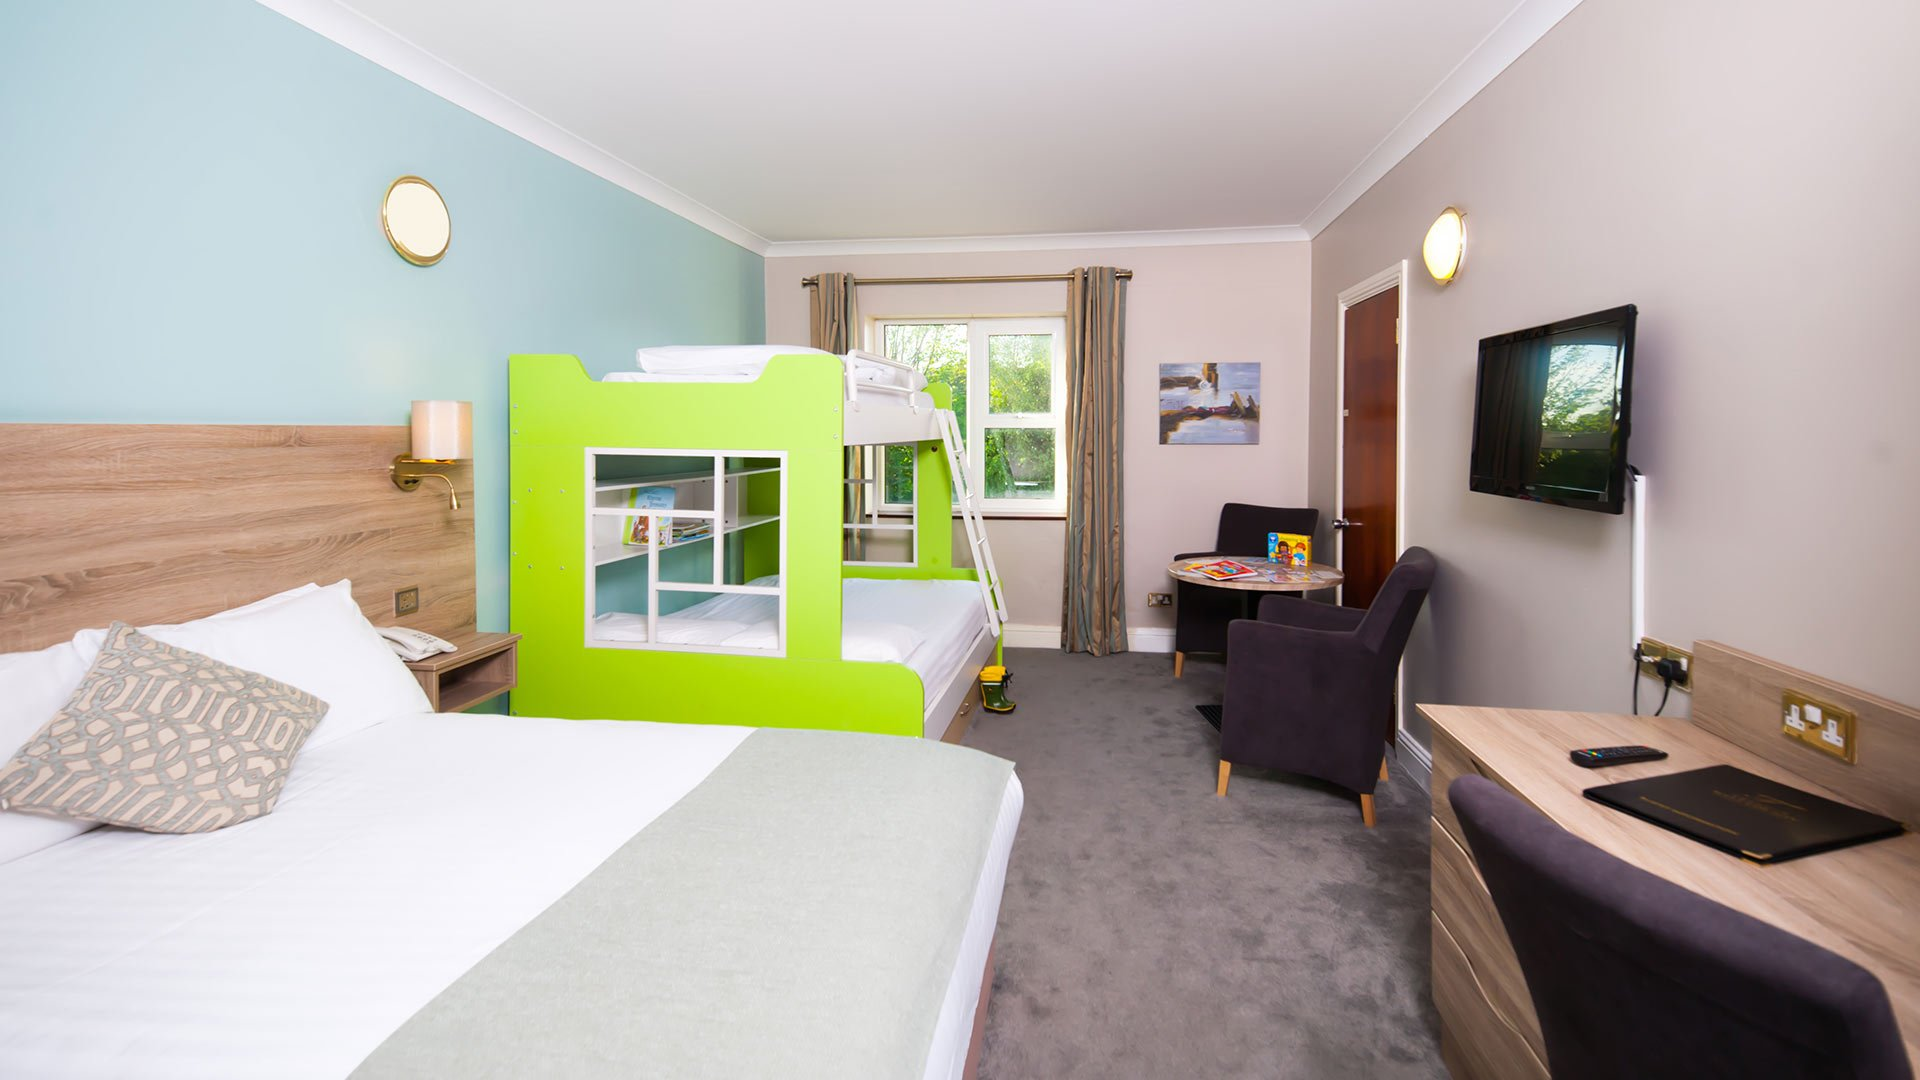 Family bunk rooms in Treacys Hotel - one of the hotels in Clare that has large family rooms.